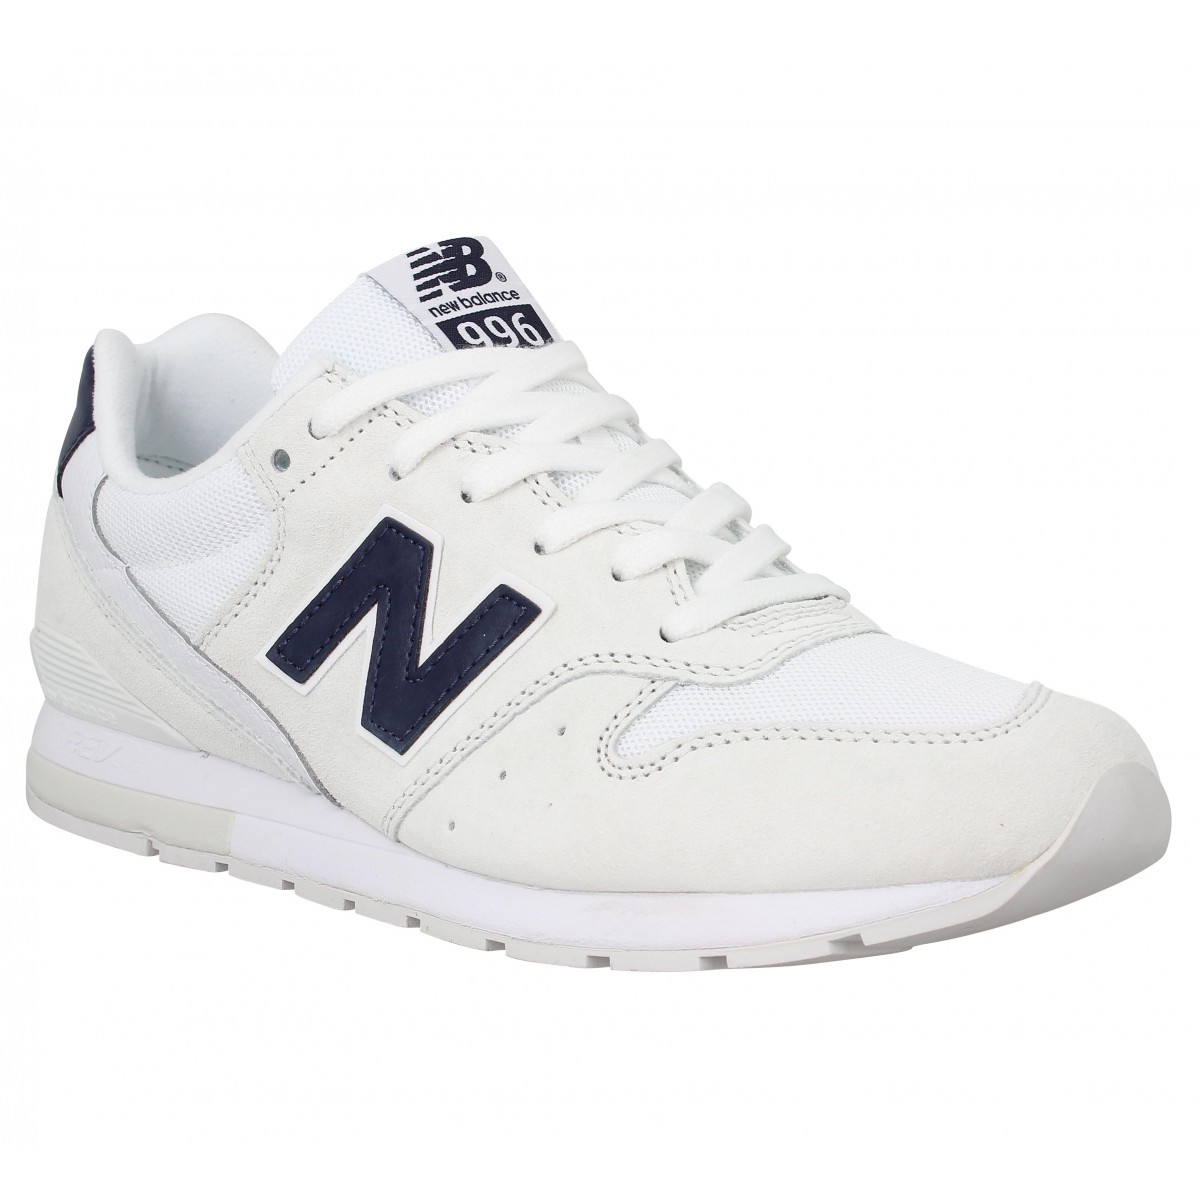 Baskets NEW BALANCE MRL 996 Blanc Marine